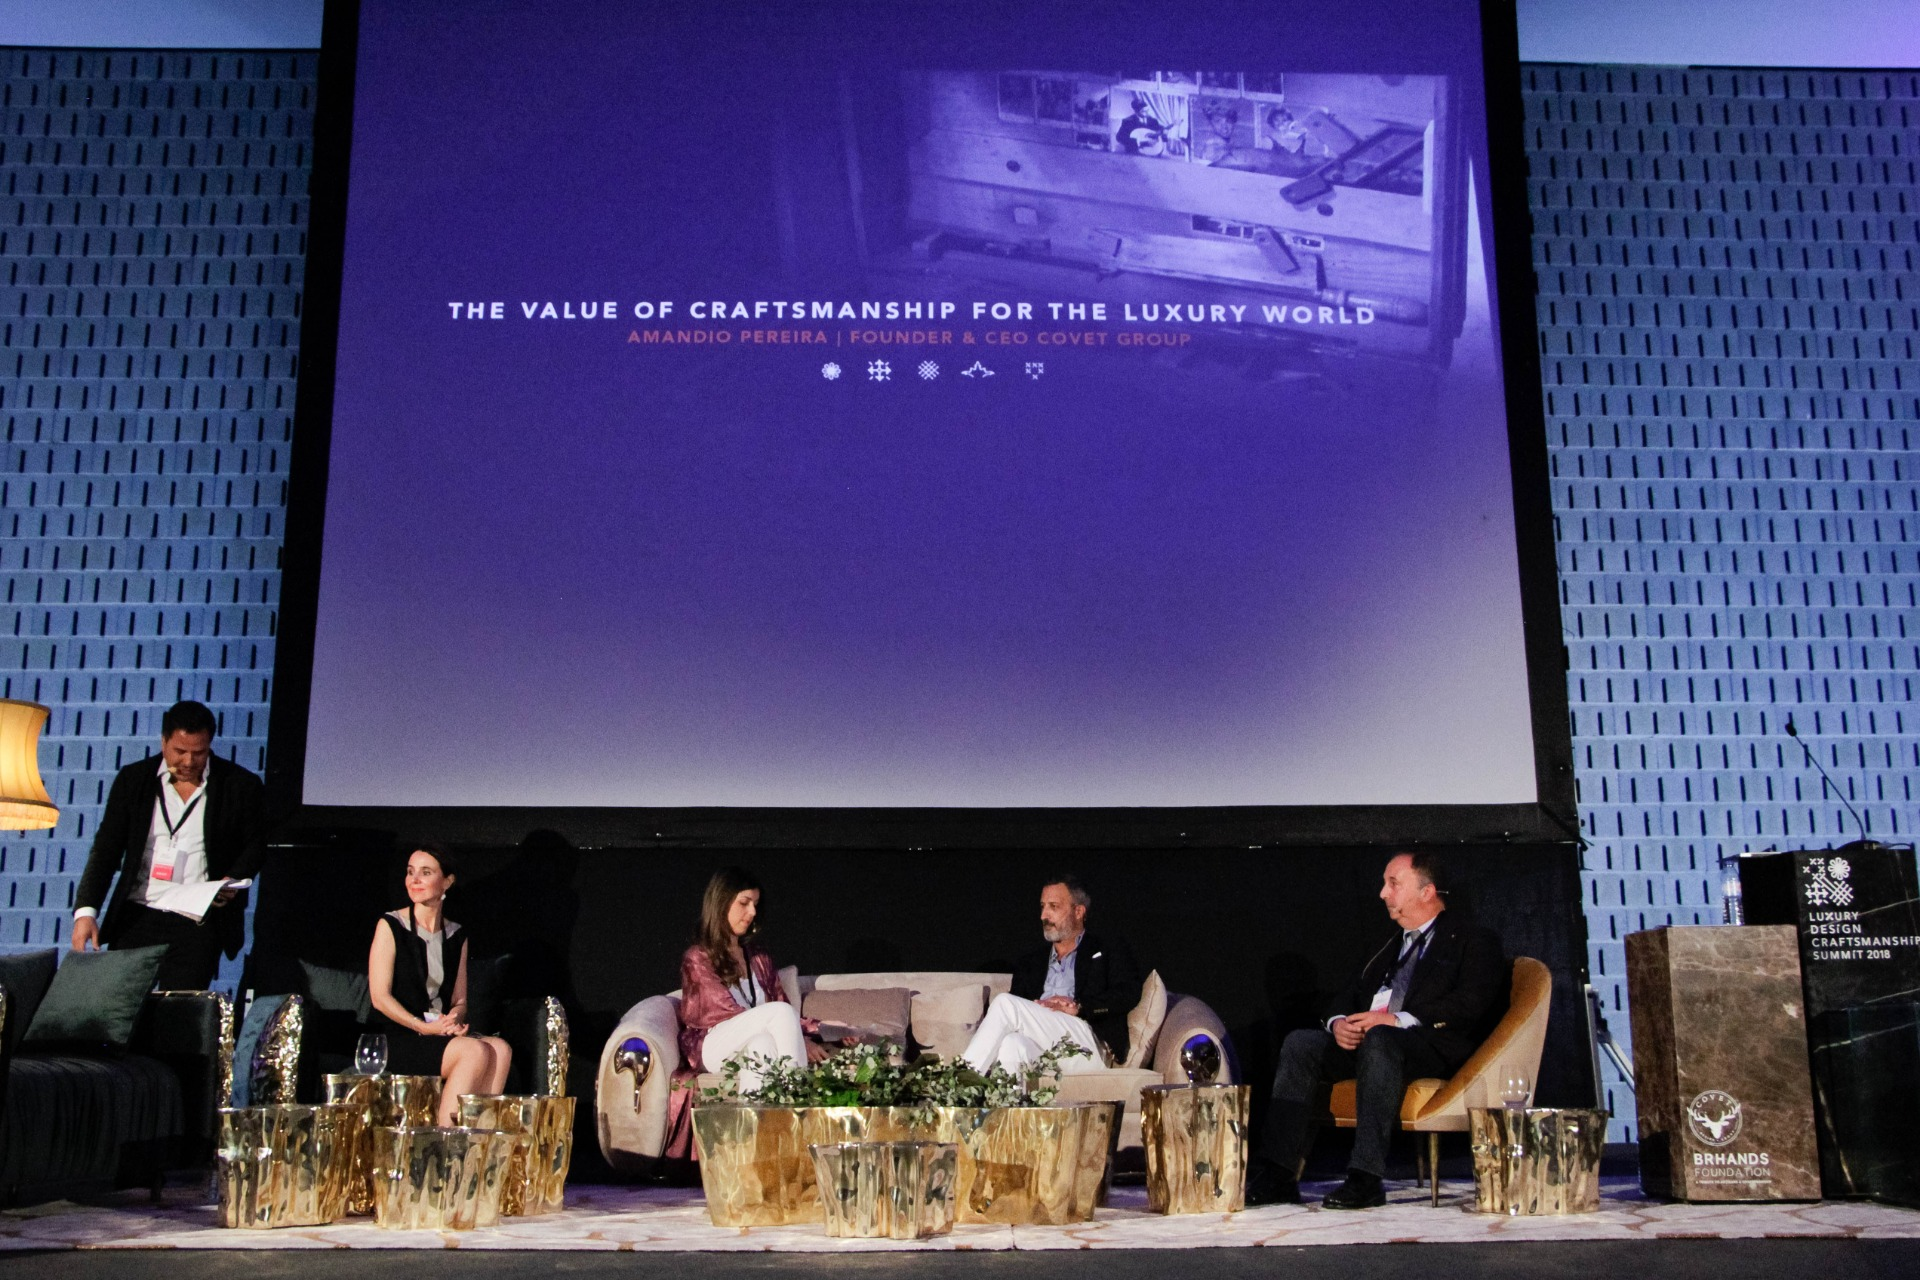 Luxury Design+Craftsmanship Summit, porto, covet group, arts and crafts, crafstmanship, Luxury Design luxury design+craftsmanship summit Celebrating Arts & Crafts in Porto – Luxury Design+Craftsmanship Summit 2019 Celebrating Craftsmanship The Luxury DesignCraftsmanship Summit 2019 5